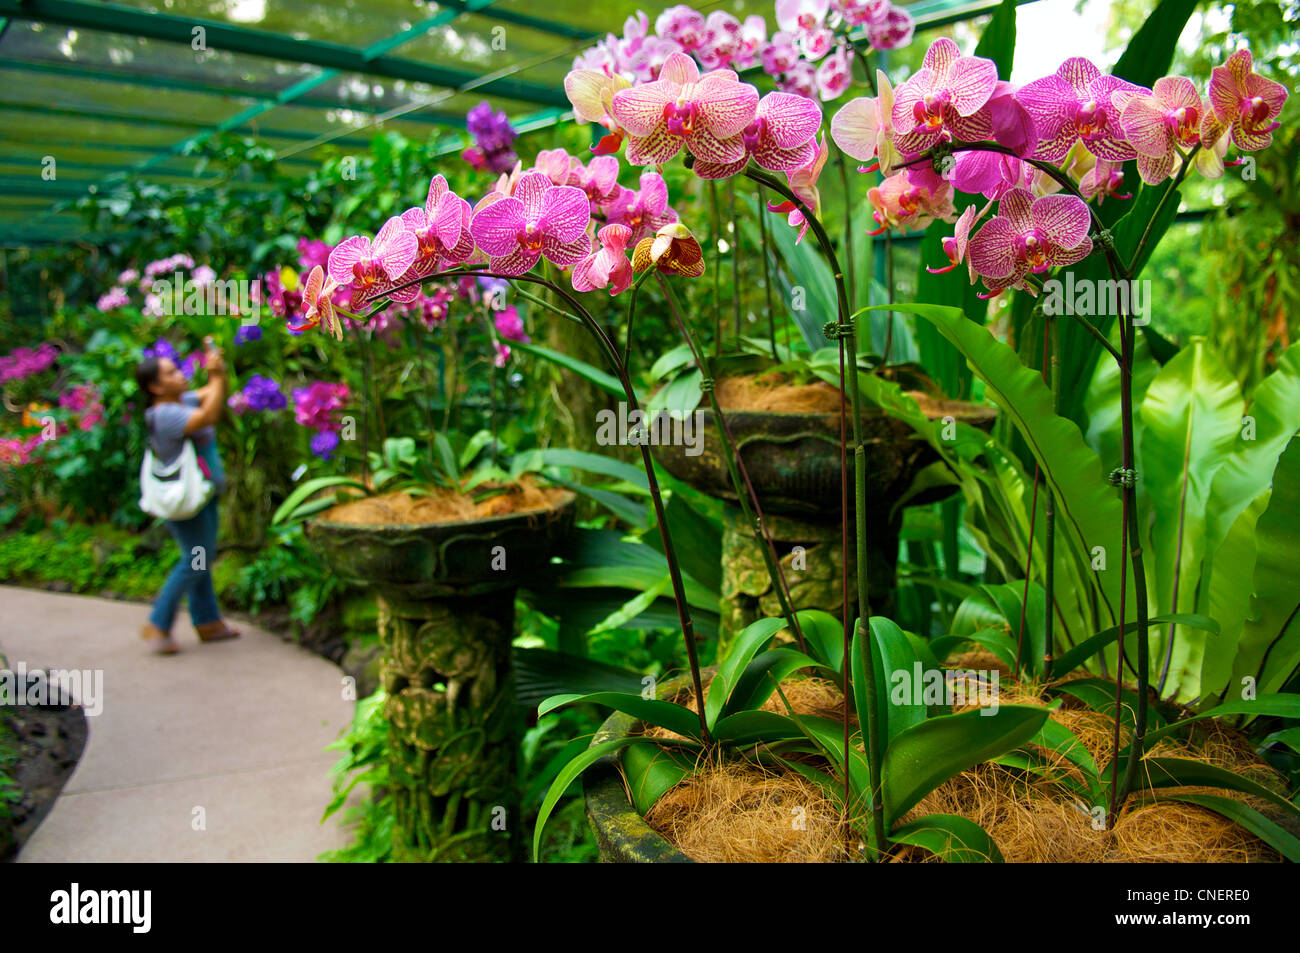 Orchids in a greenhouse in the National Orchid Garden in the Botanic Gardens in Singapore Stock Photo